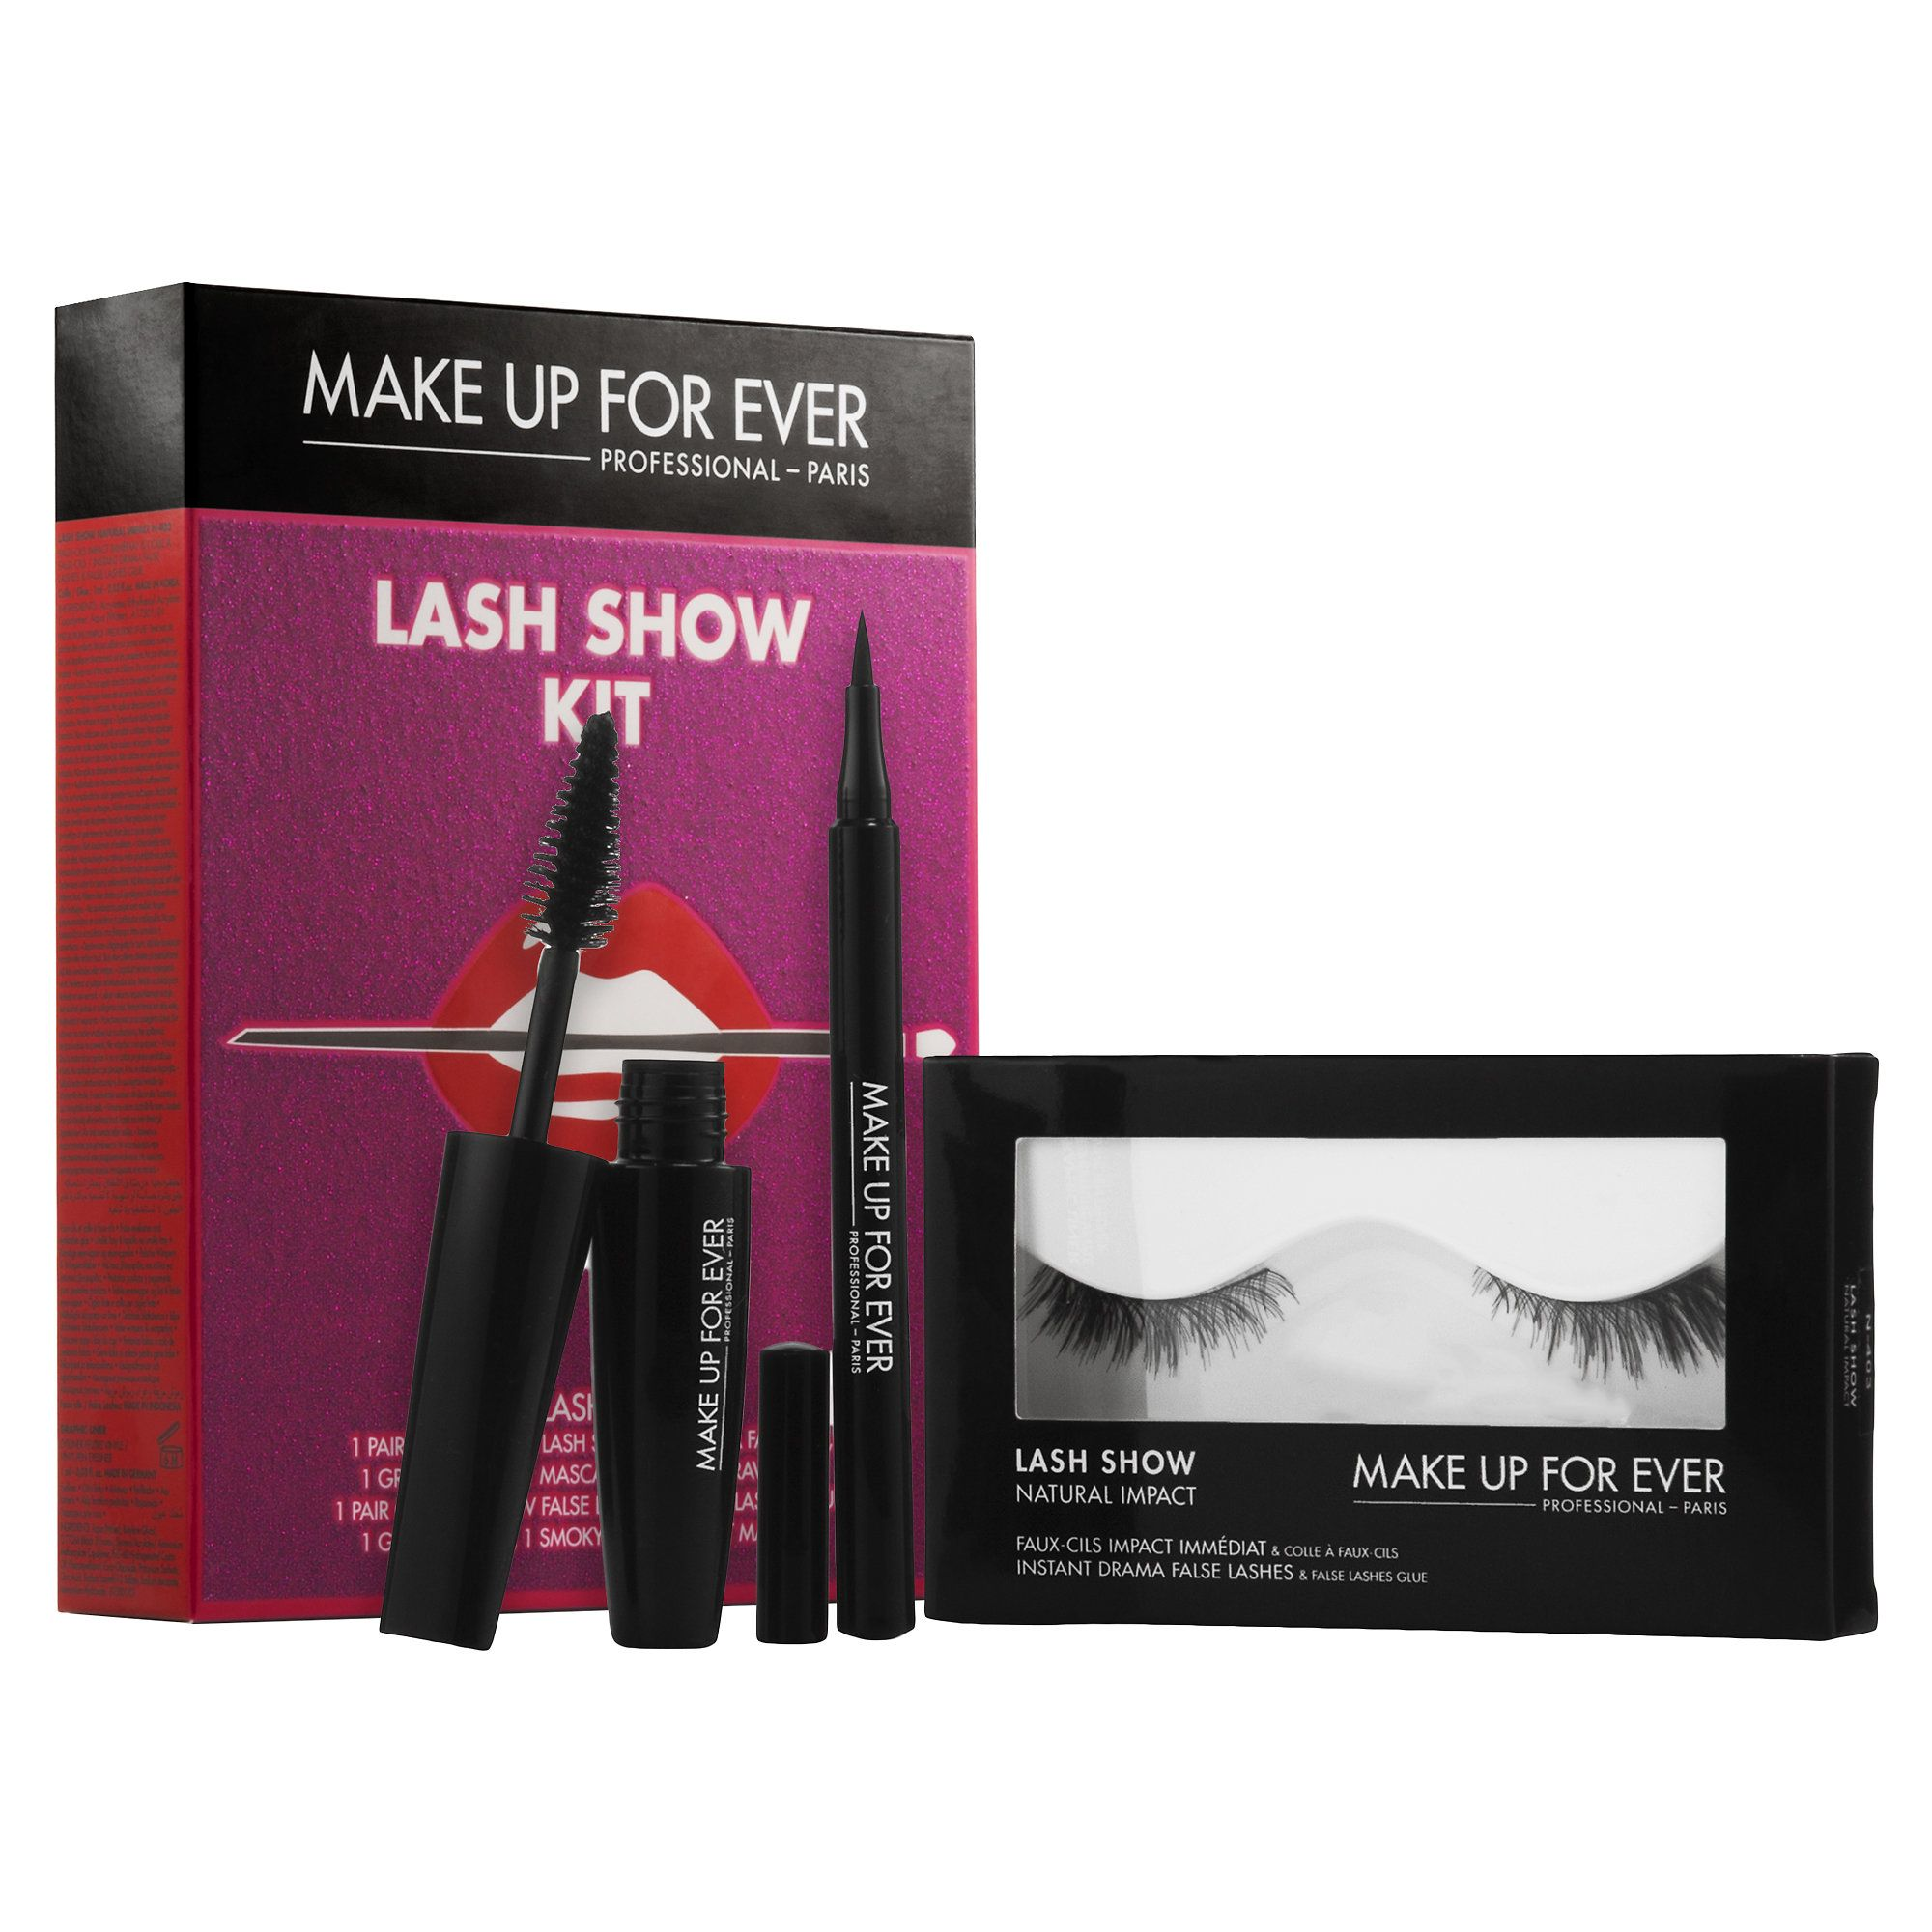 Makeup For Ever Lash Show Kit for Holiday 2015